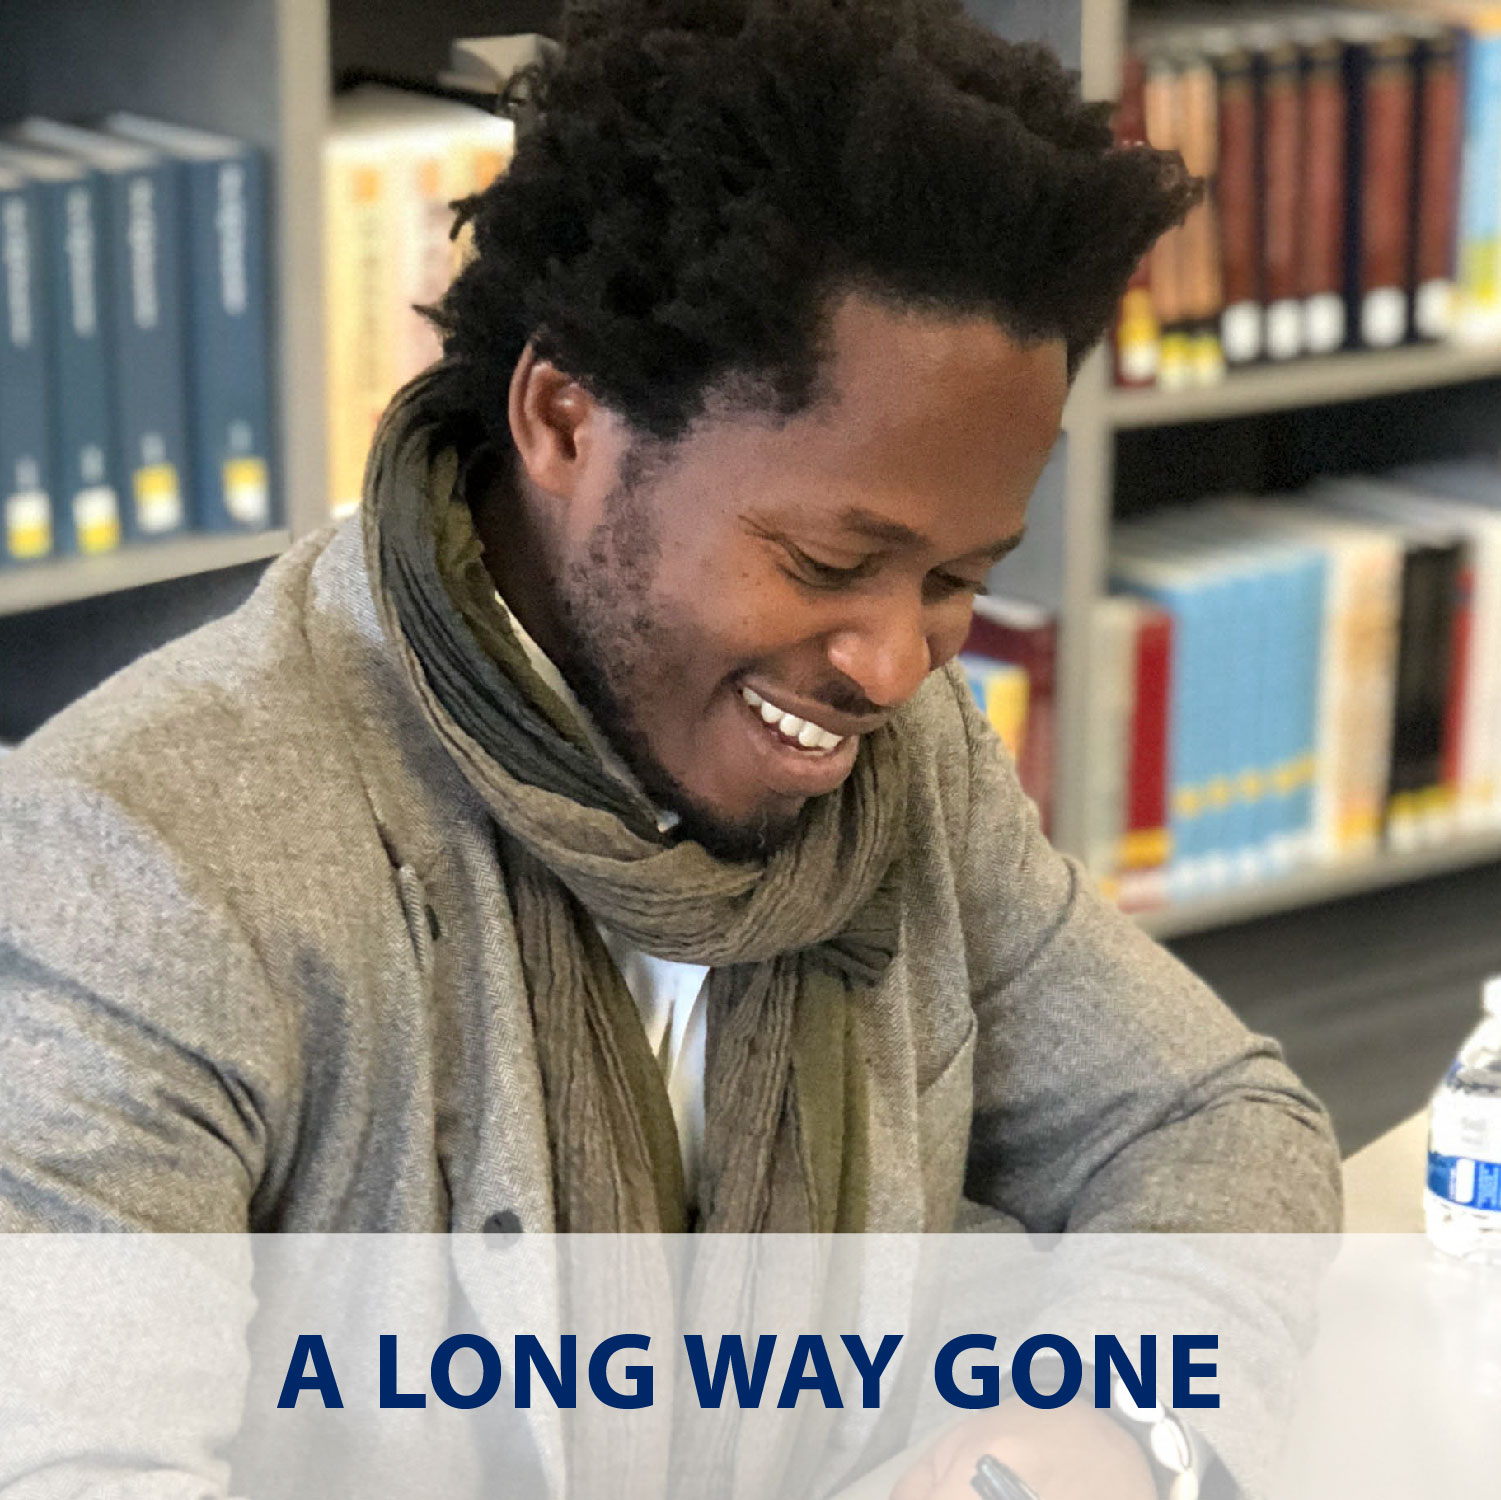 A Long Way Gone: Ishmael Beah